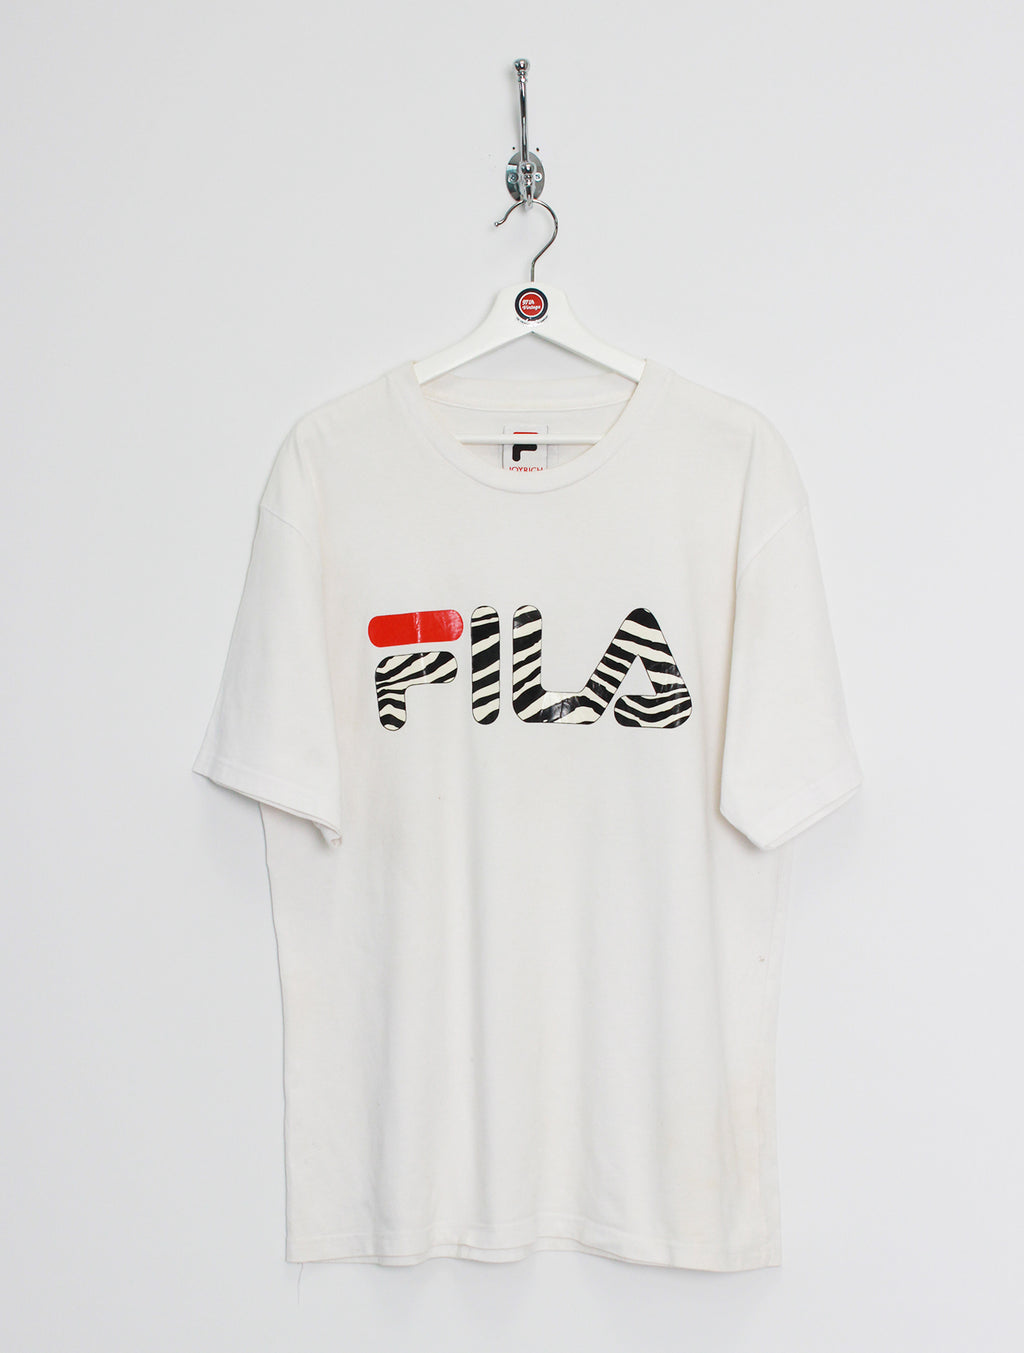 Fila T-Shirt (XL)